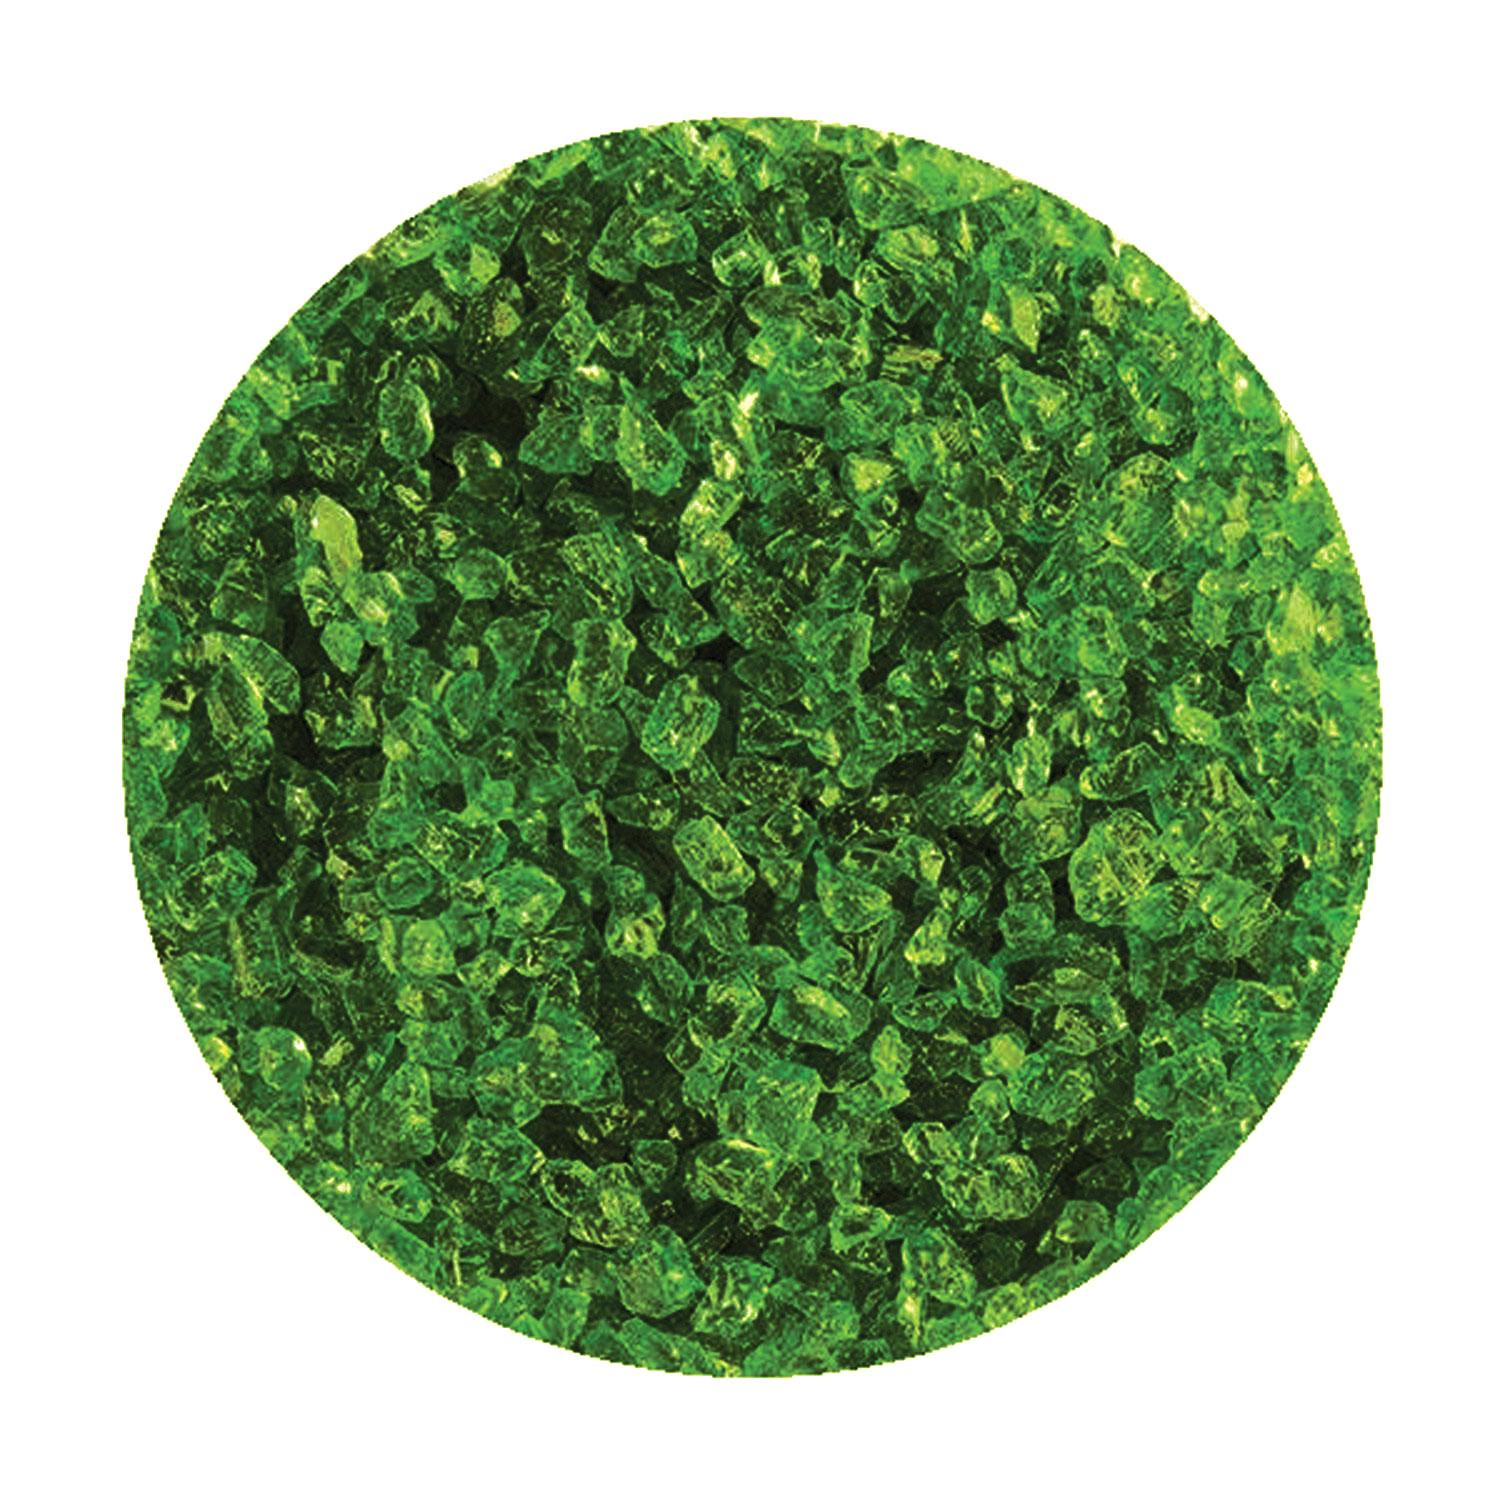 8.5 oz Moss Green Transparent Coarse Frit - 96 COE